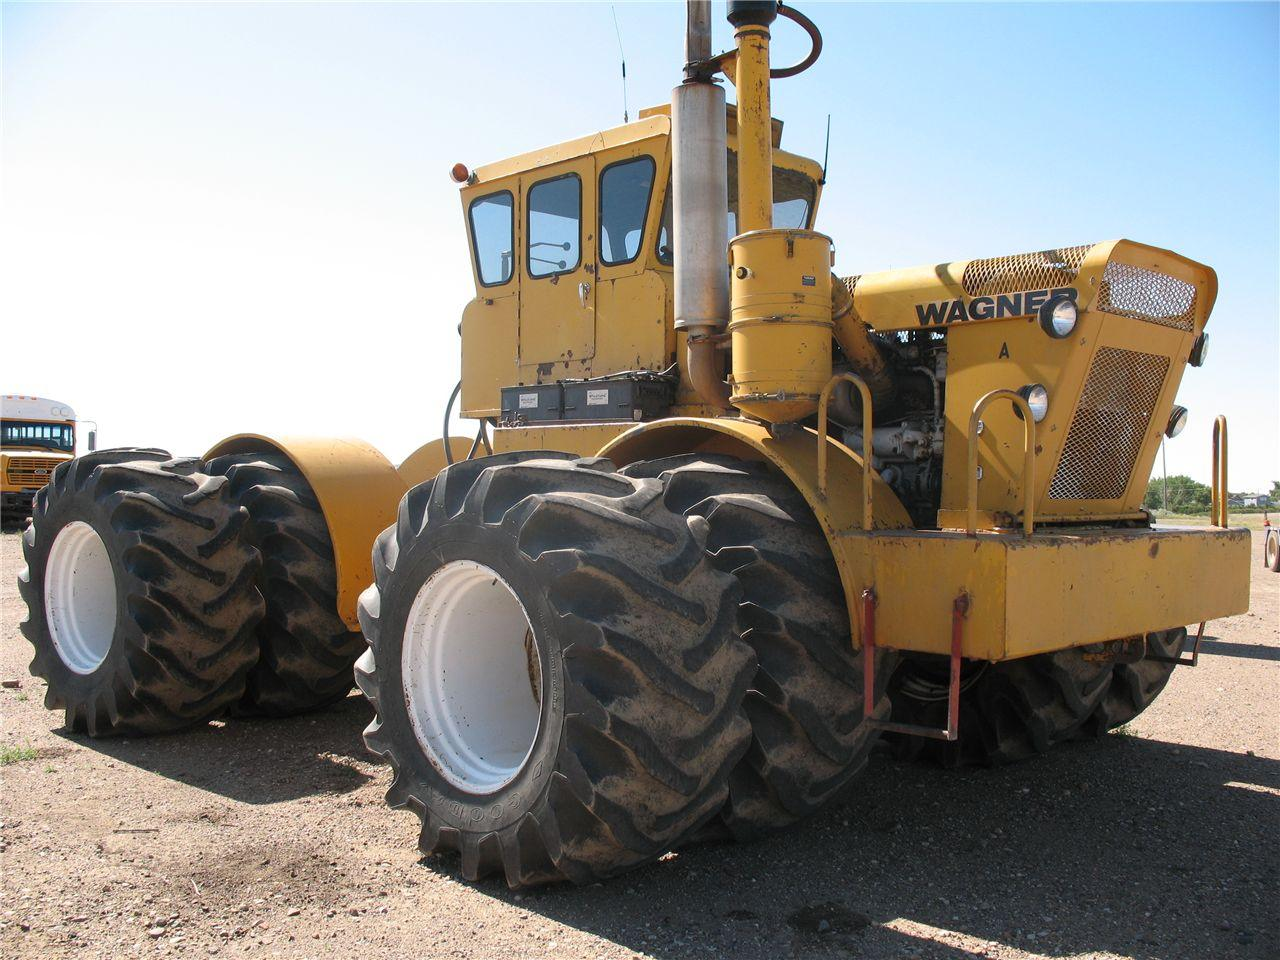 wagner tractor